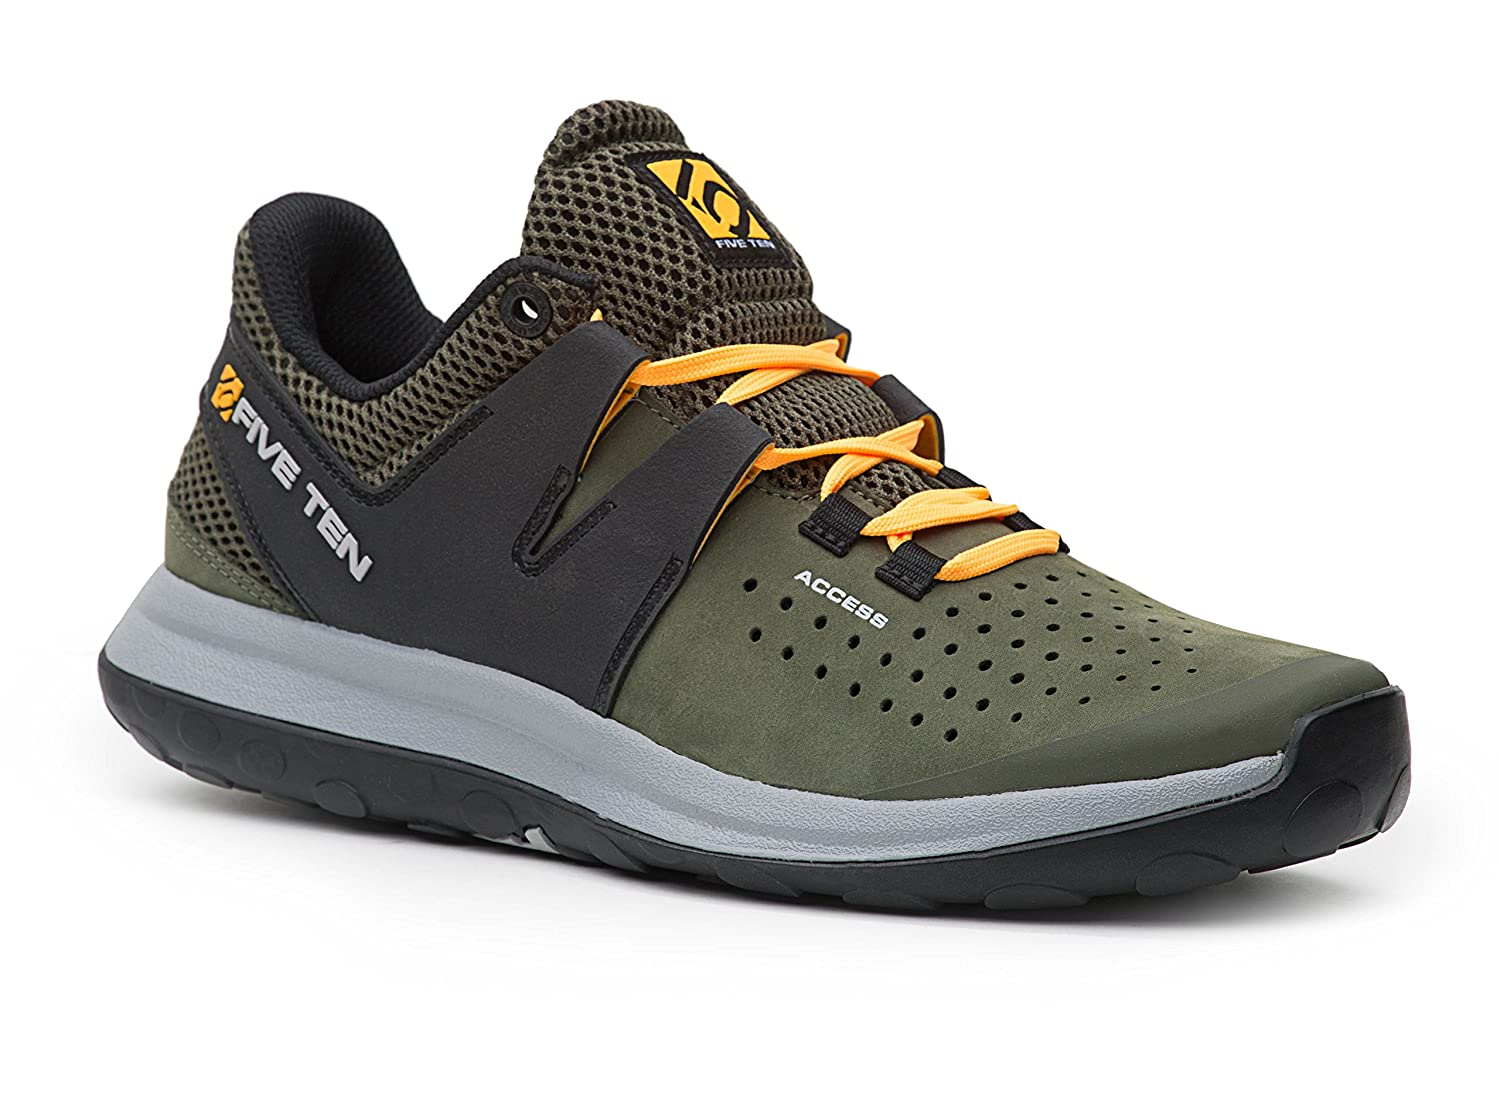 Five Ten Access - Base Grün - EU 48.5/UK 13/US 14 - Atmungsaktiver Leichter Multisport-Schuh